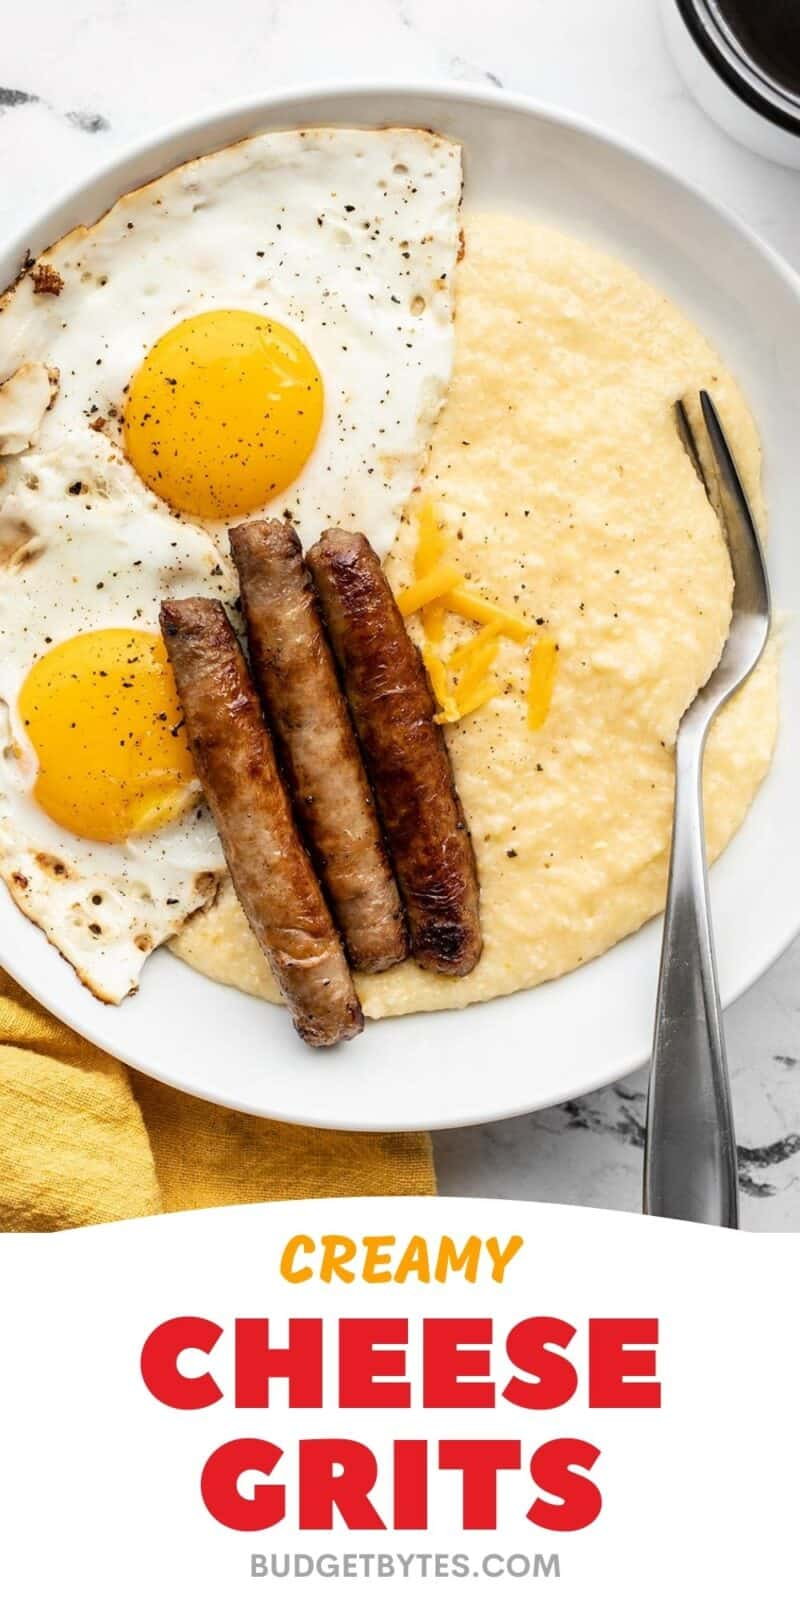 cheese grits on a plate with eggs and sausage, title text at the bottom